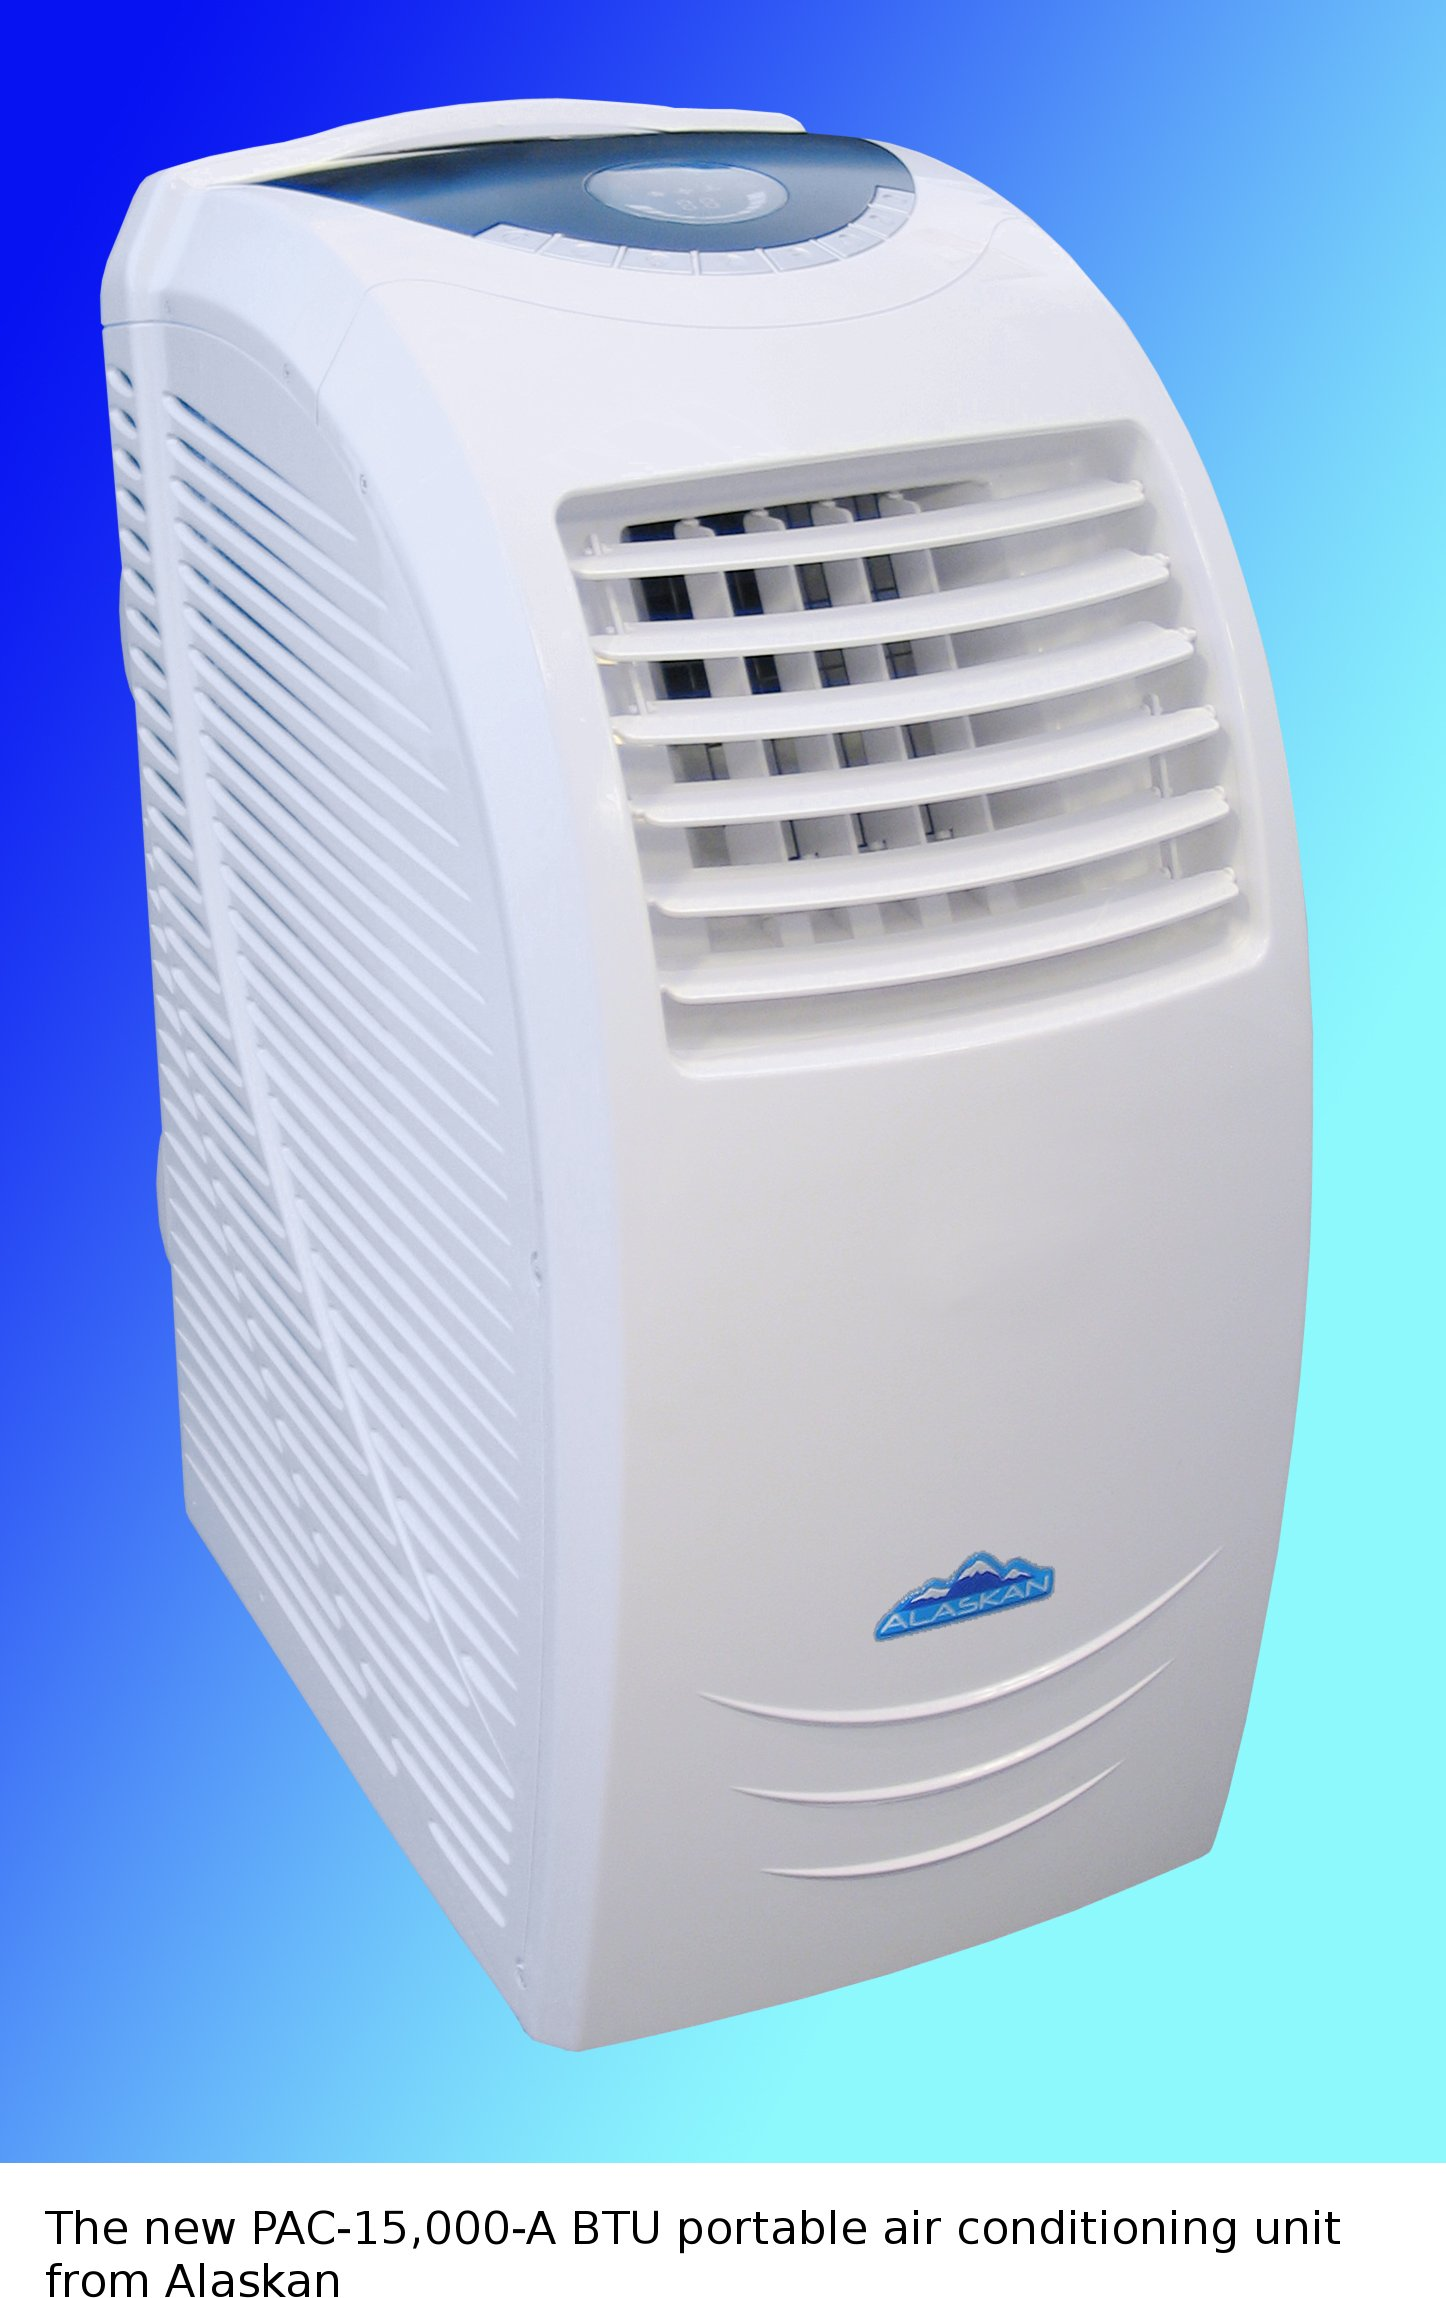 Portable Air Conditioning Units Small Portable Air